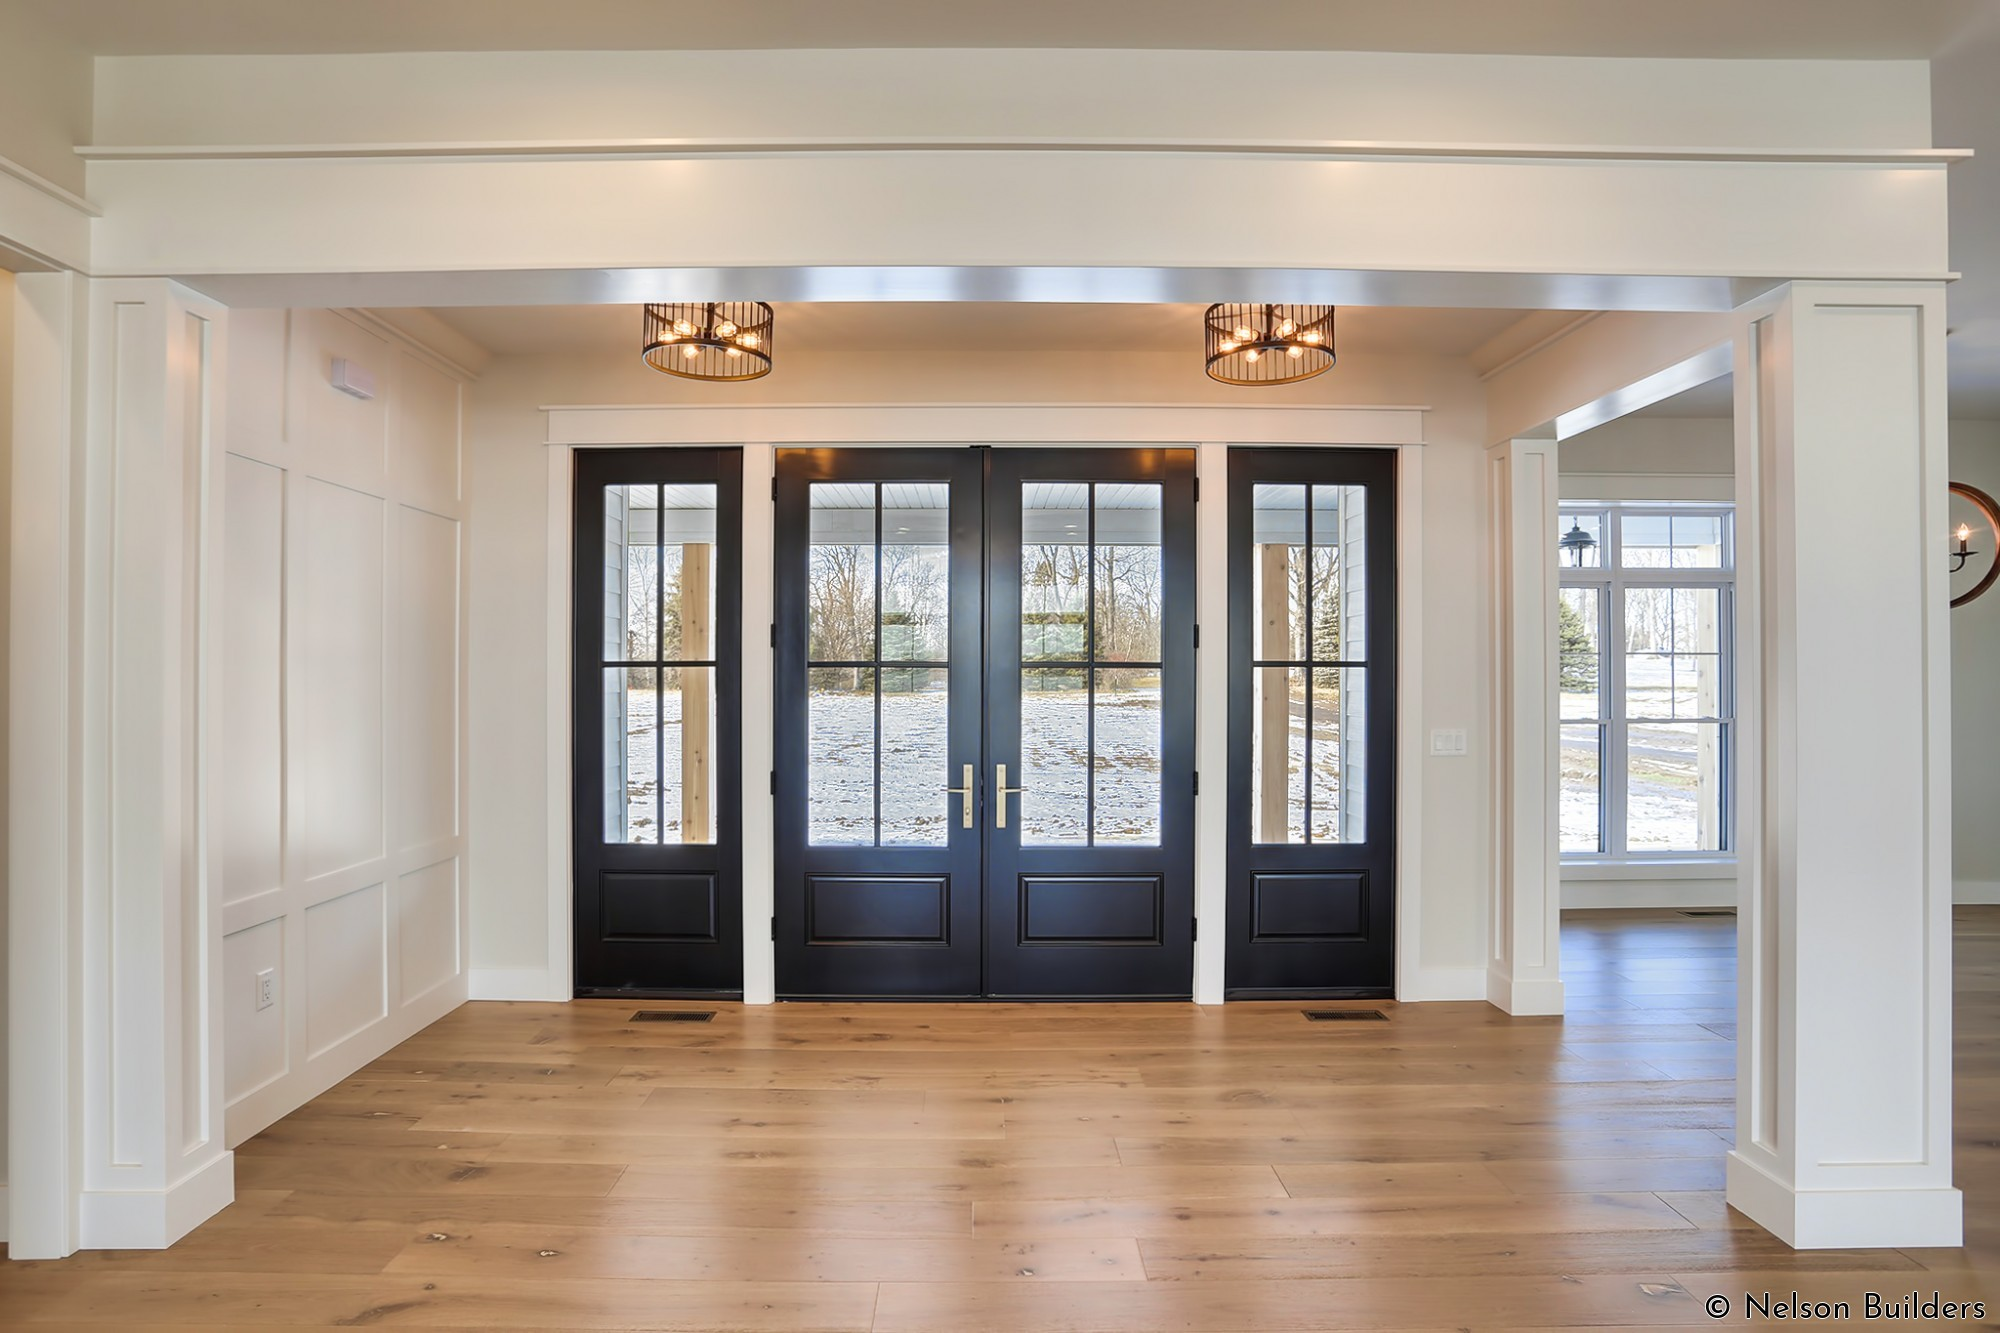 The 8-foot tall front doors are balanced inside a formal foyer, complete with paneled columns and wall details.